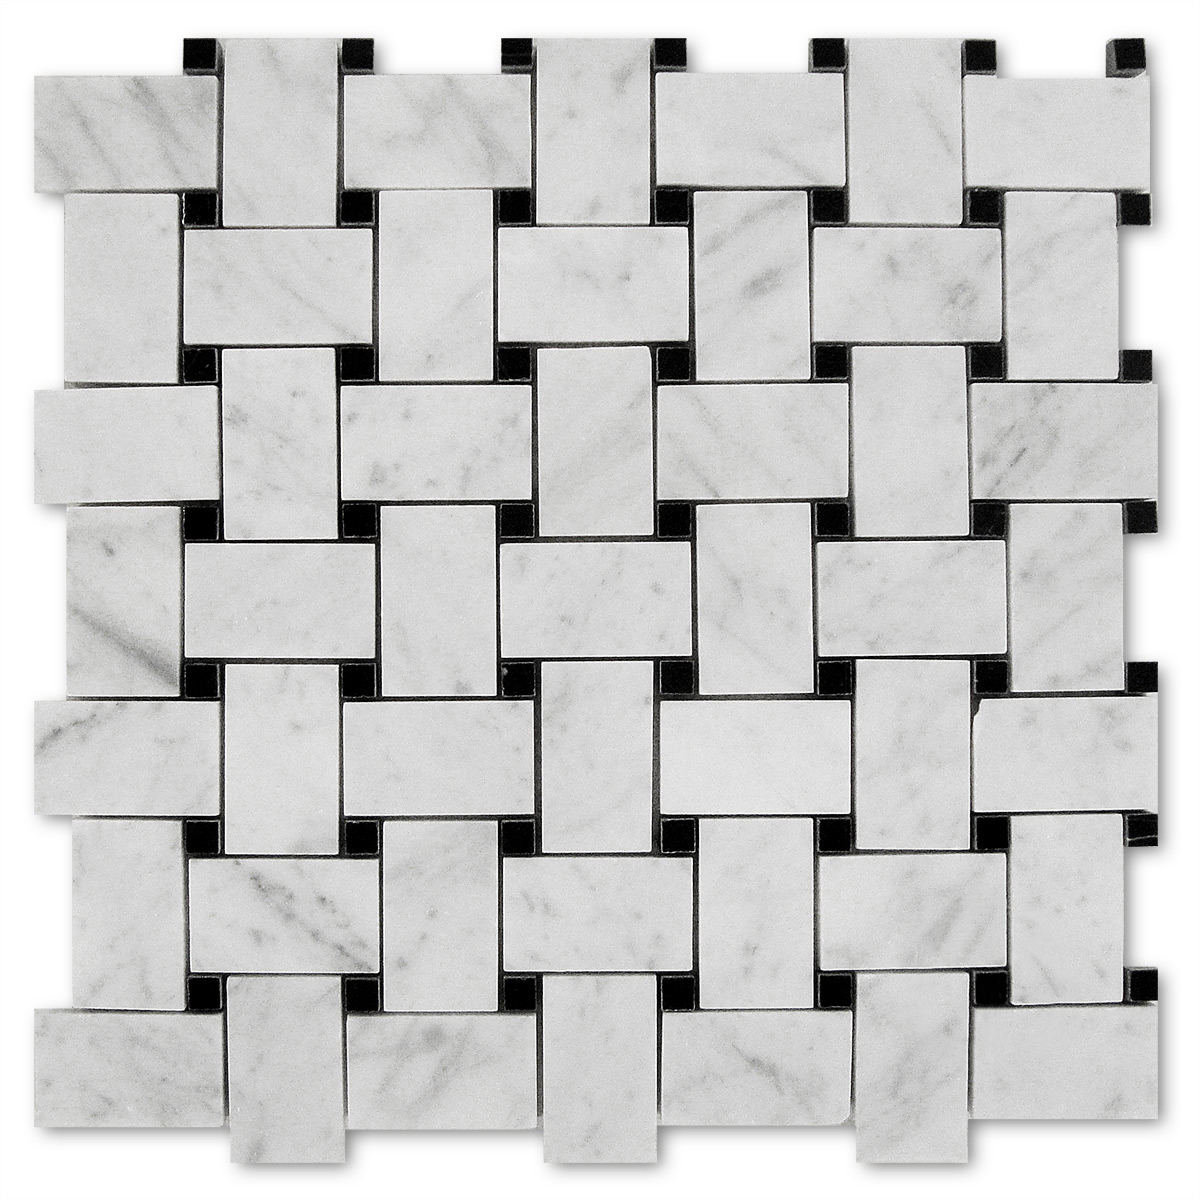 BASKETWEAVE POLISHED WHITE CARRARA + POLISHED BLACK DOTS